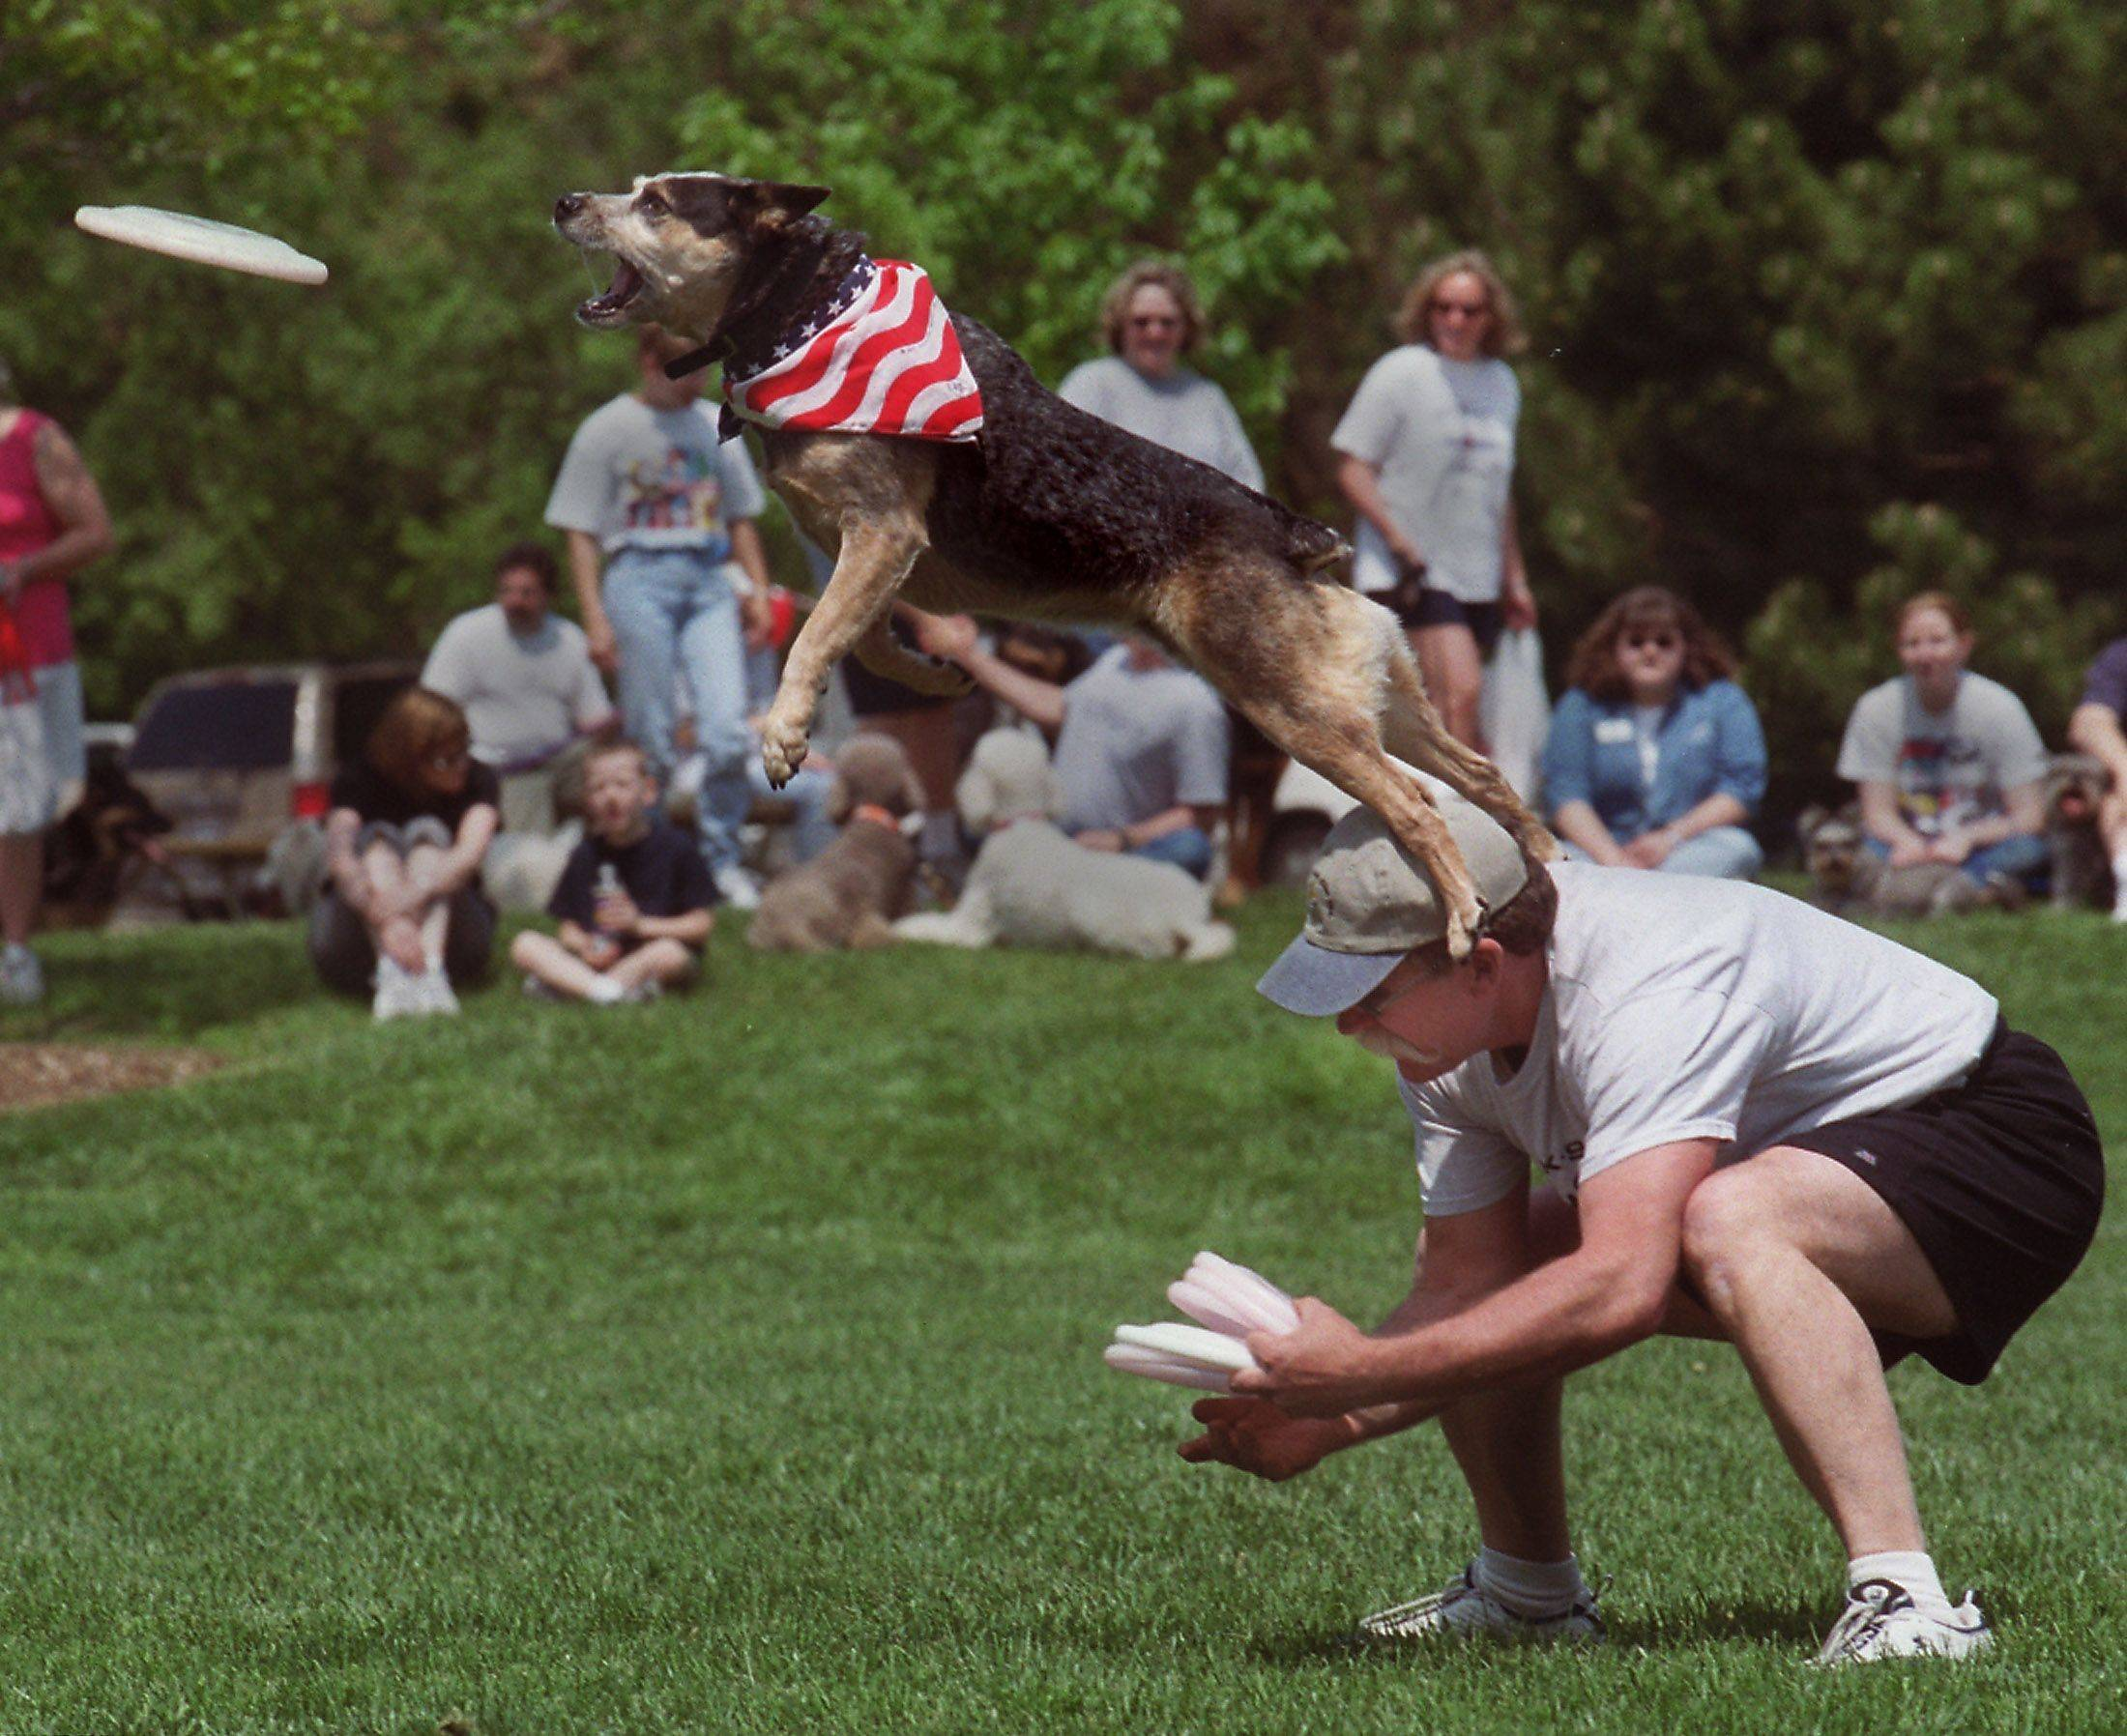 Disc dogs from across the globe will compete in Naperville Saturday to qualify for two major world championships.